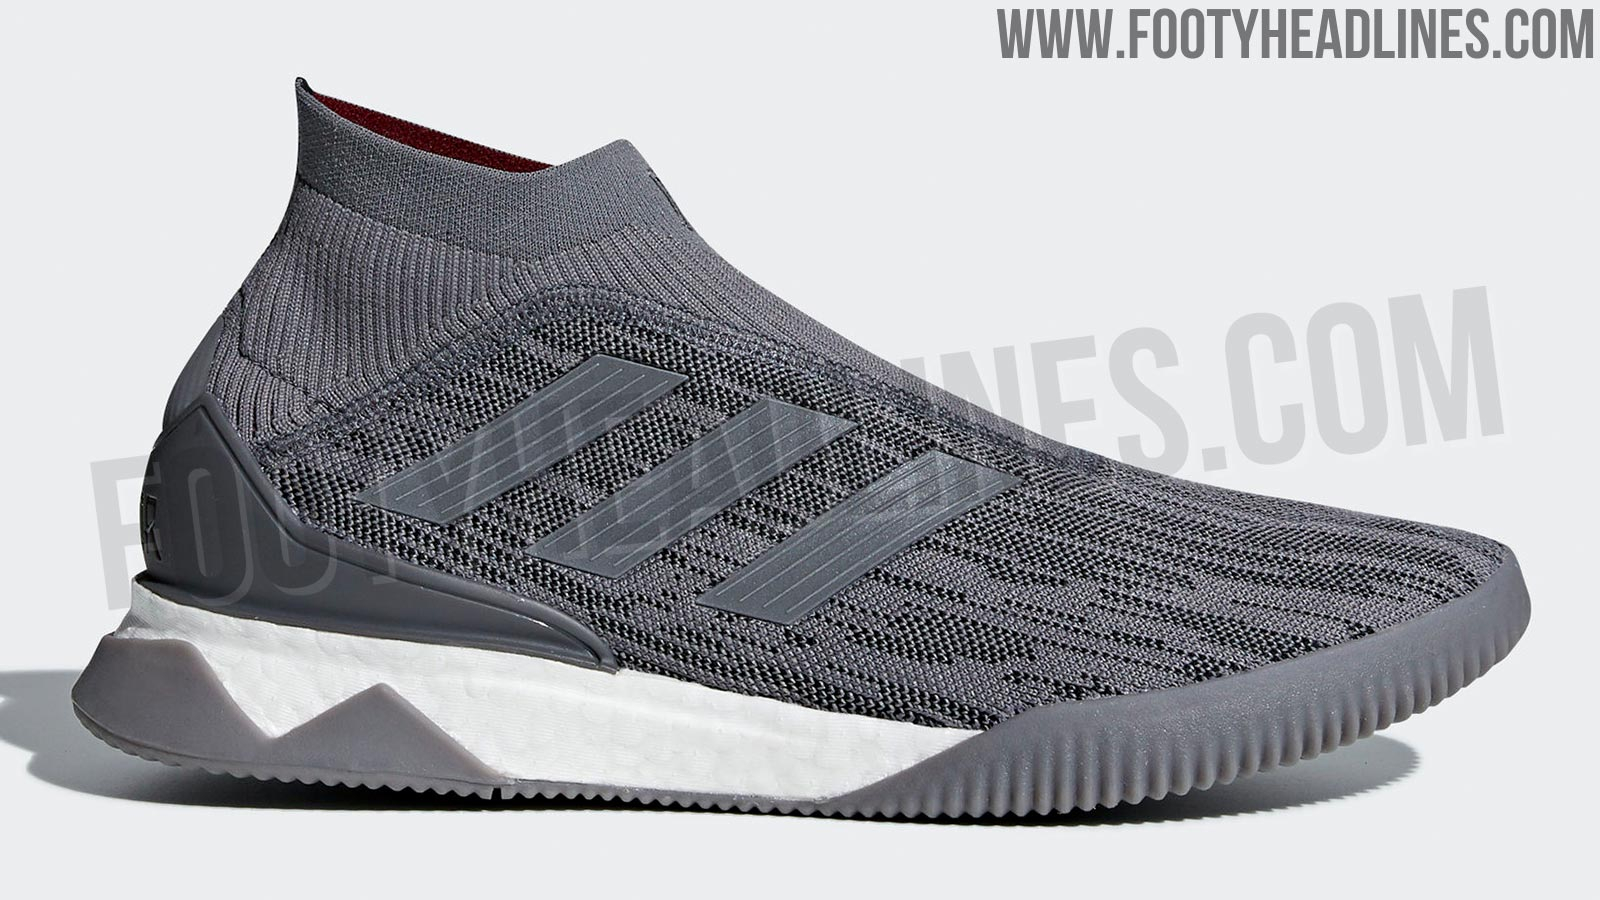 Adidas Paul Pogba Predator sneakers outlet locations for sale cA9c9B295L